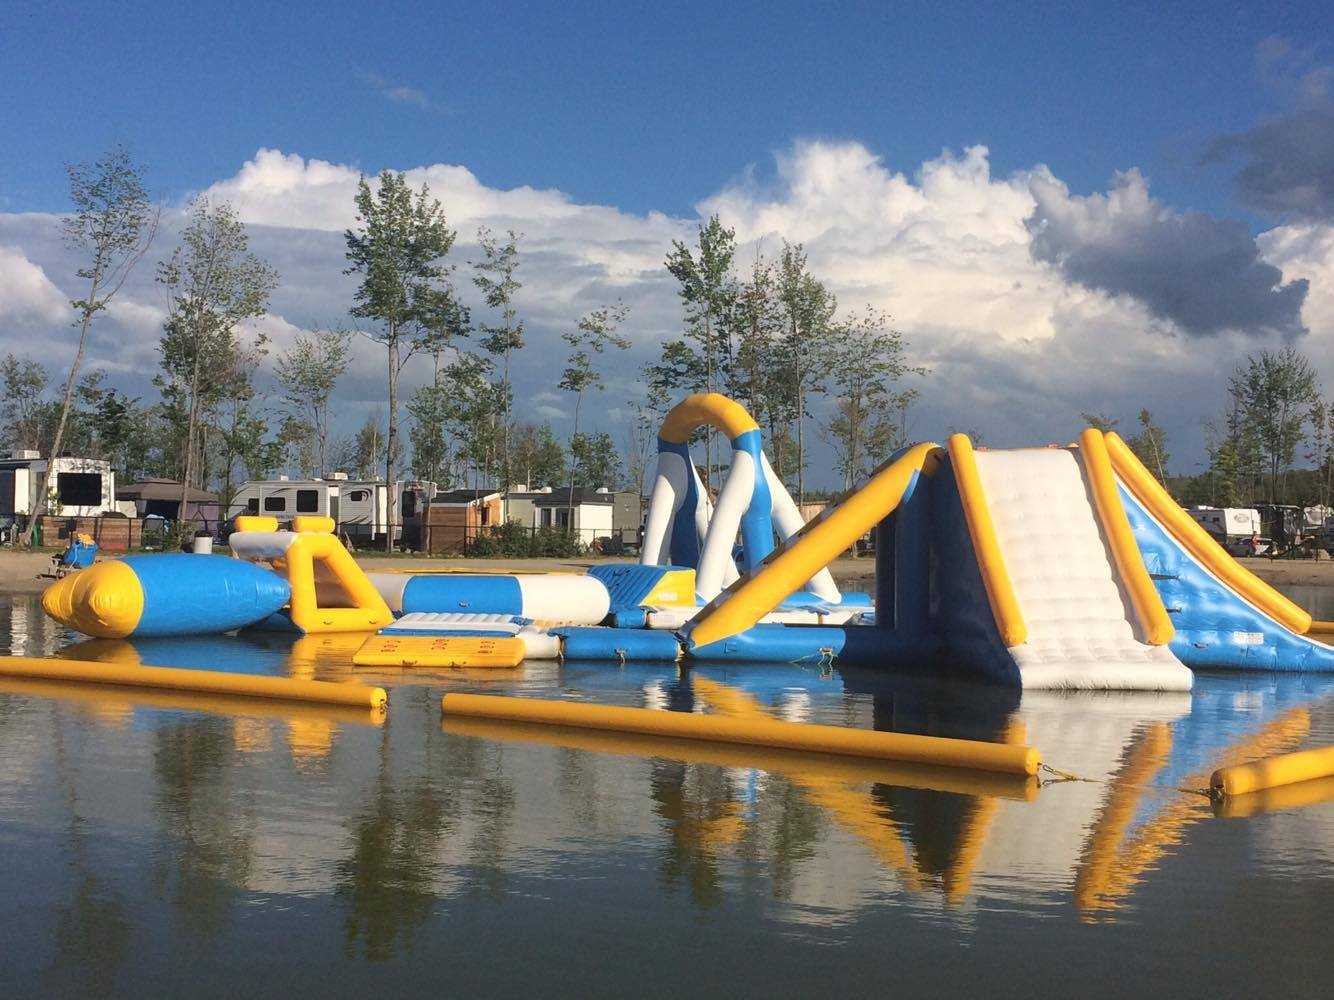 http://www.familizoo.com/ENG/wp-content/uploads/2019/01/parcours-gonflable-lac-complexe-atlantide-3-1.jpg